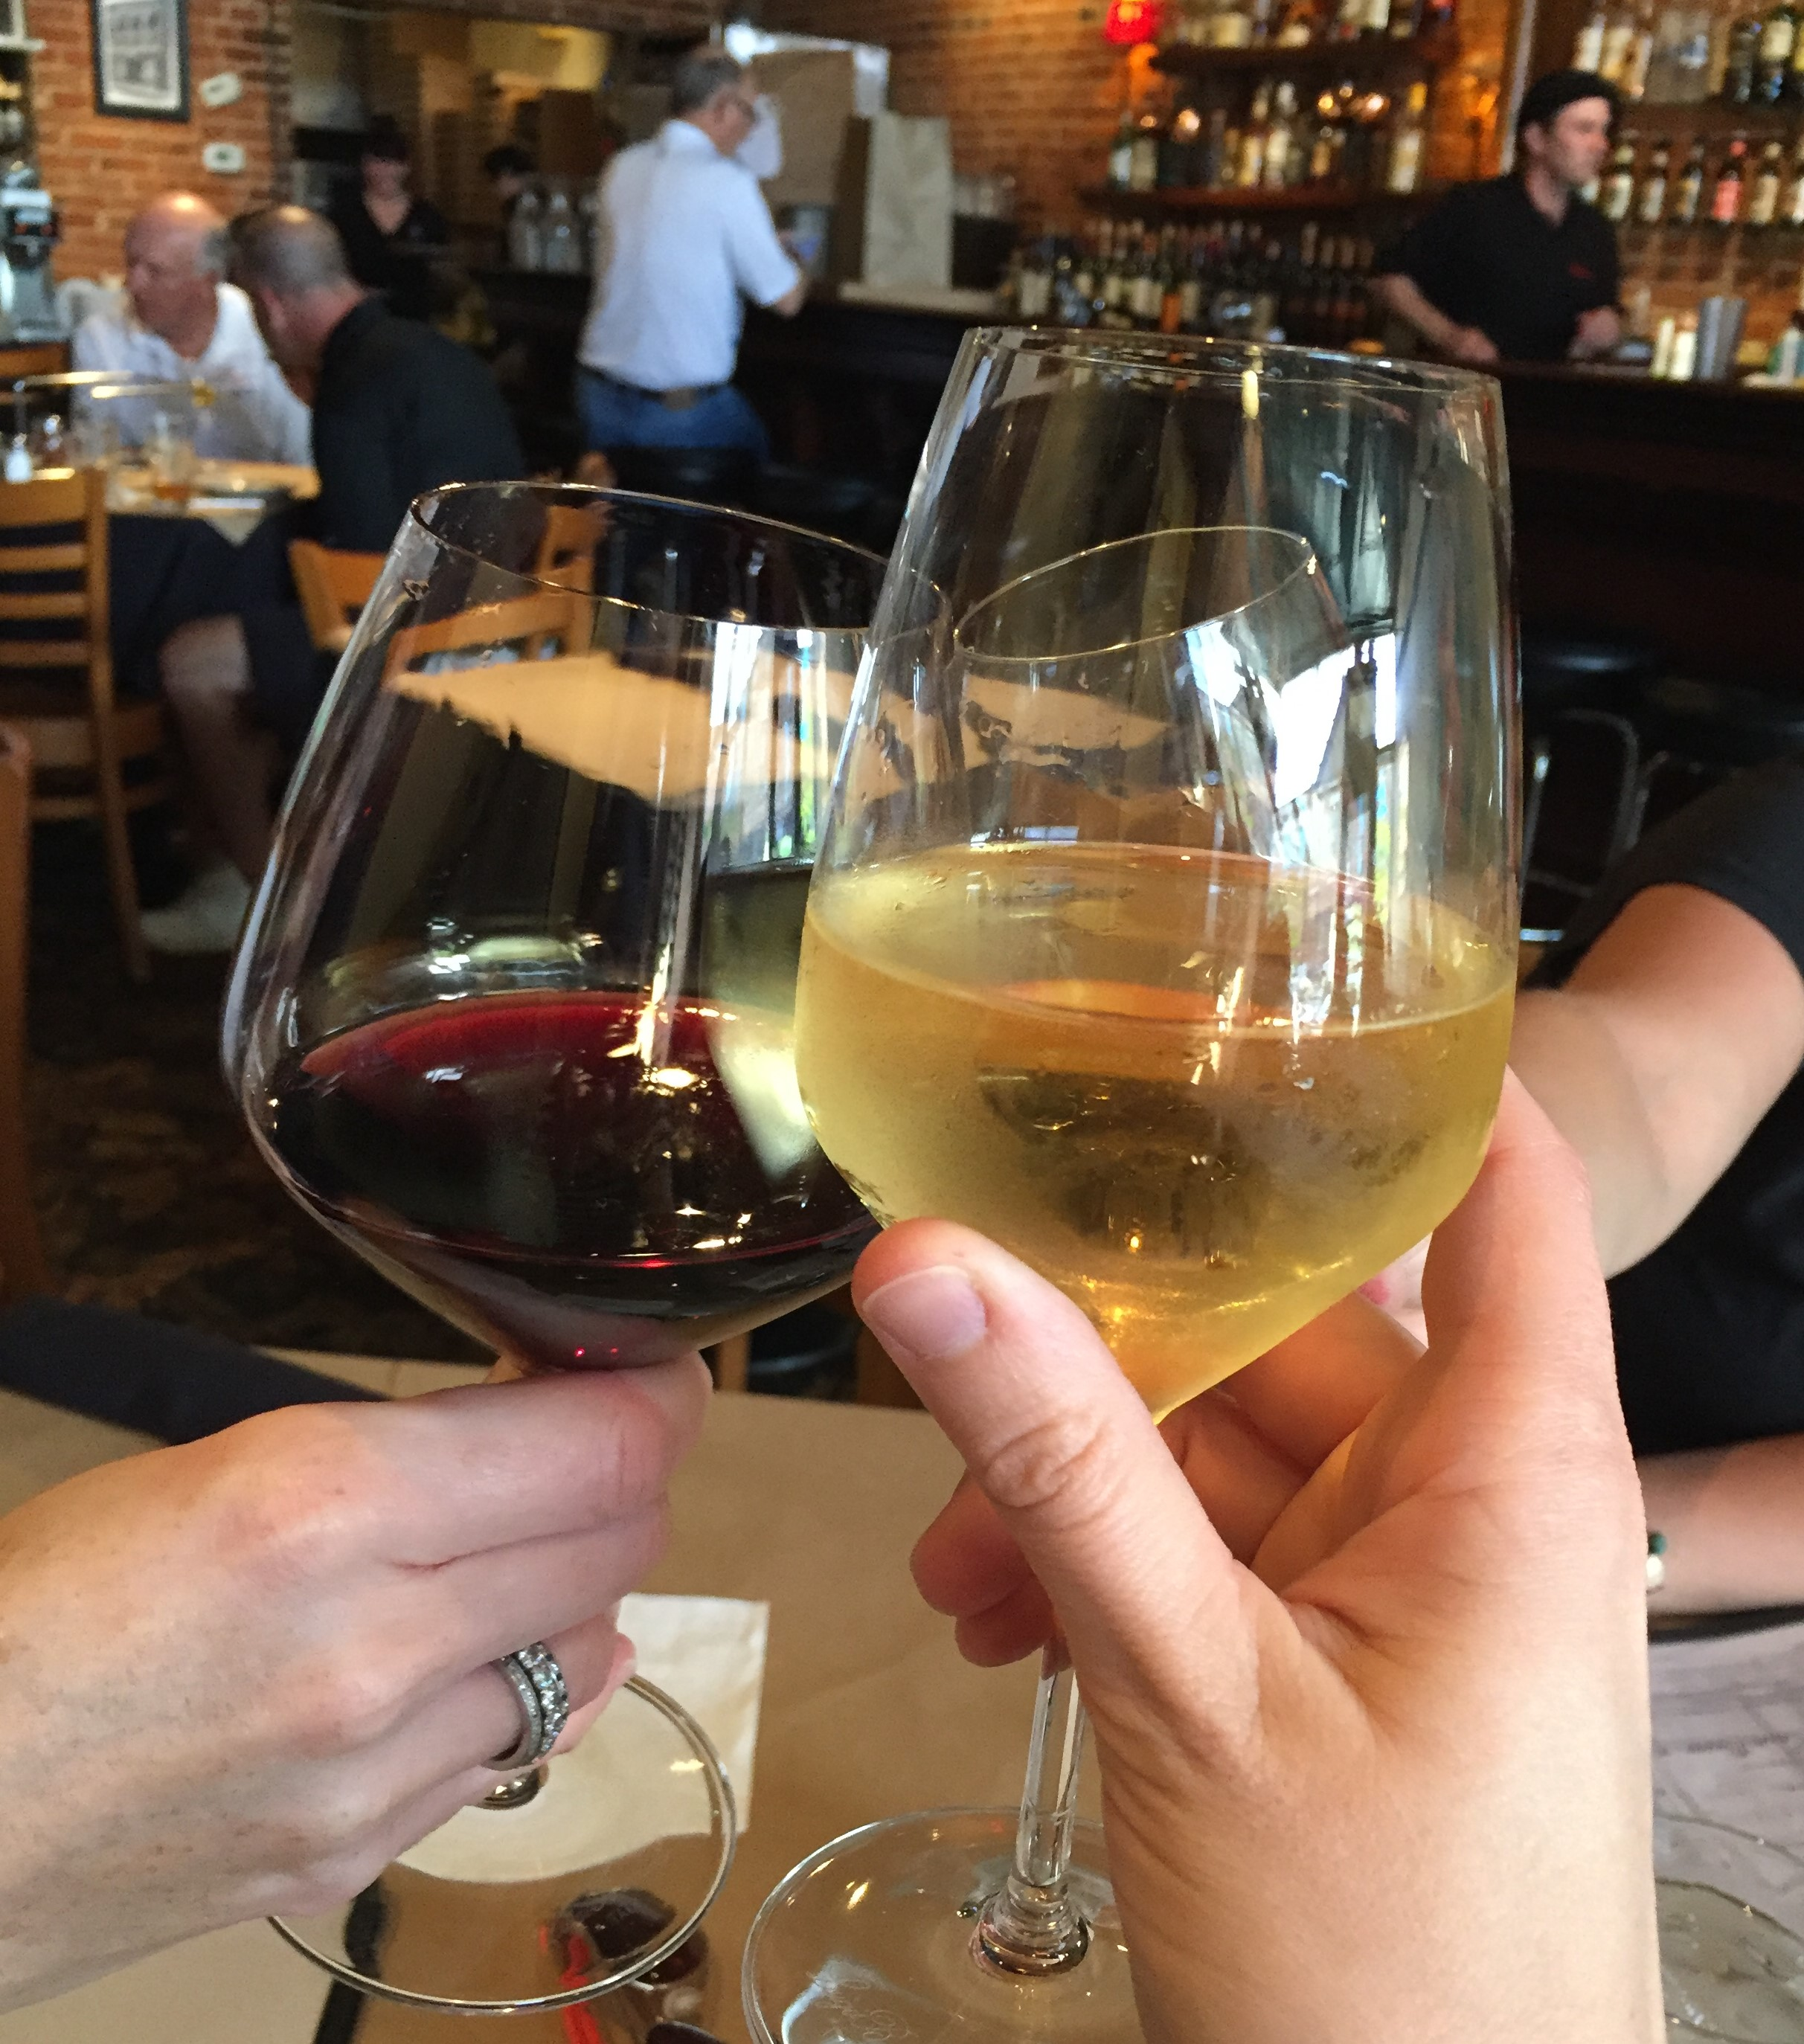 Picture of a wine glass toast at Cannova's Pizzeria